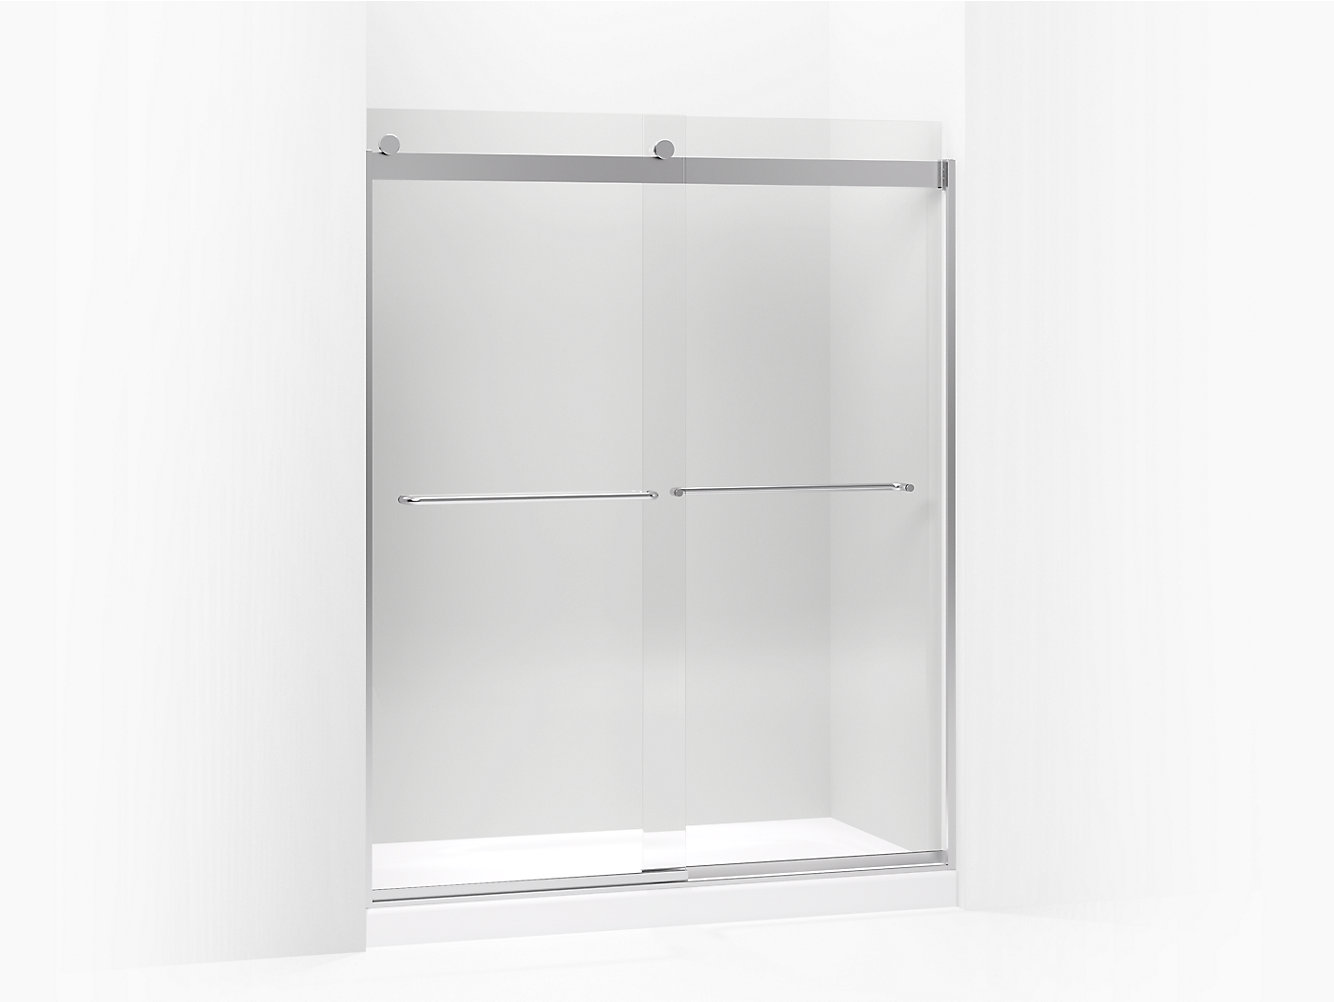 KOHLER | 706015-L | Levity sliding shower door, 74"|1334|1002|?|6fb003ac6cdf28b58b8e432cc1a9d7ea|False|UNLIKELY|0.32183516025543213